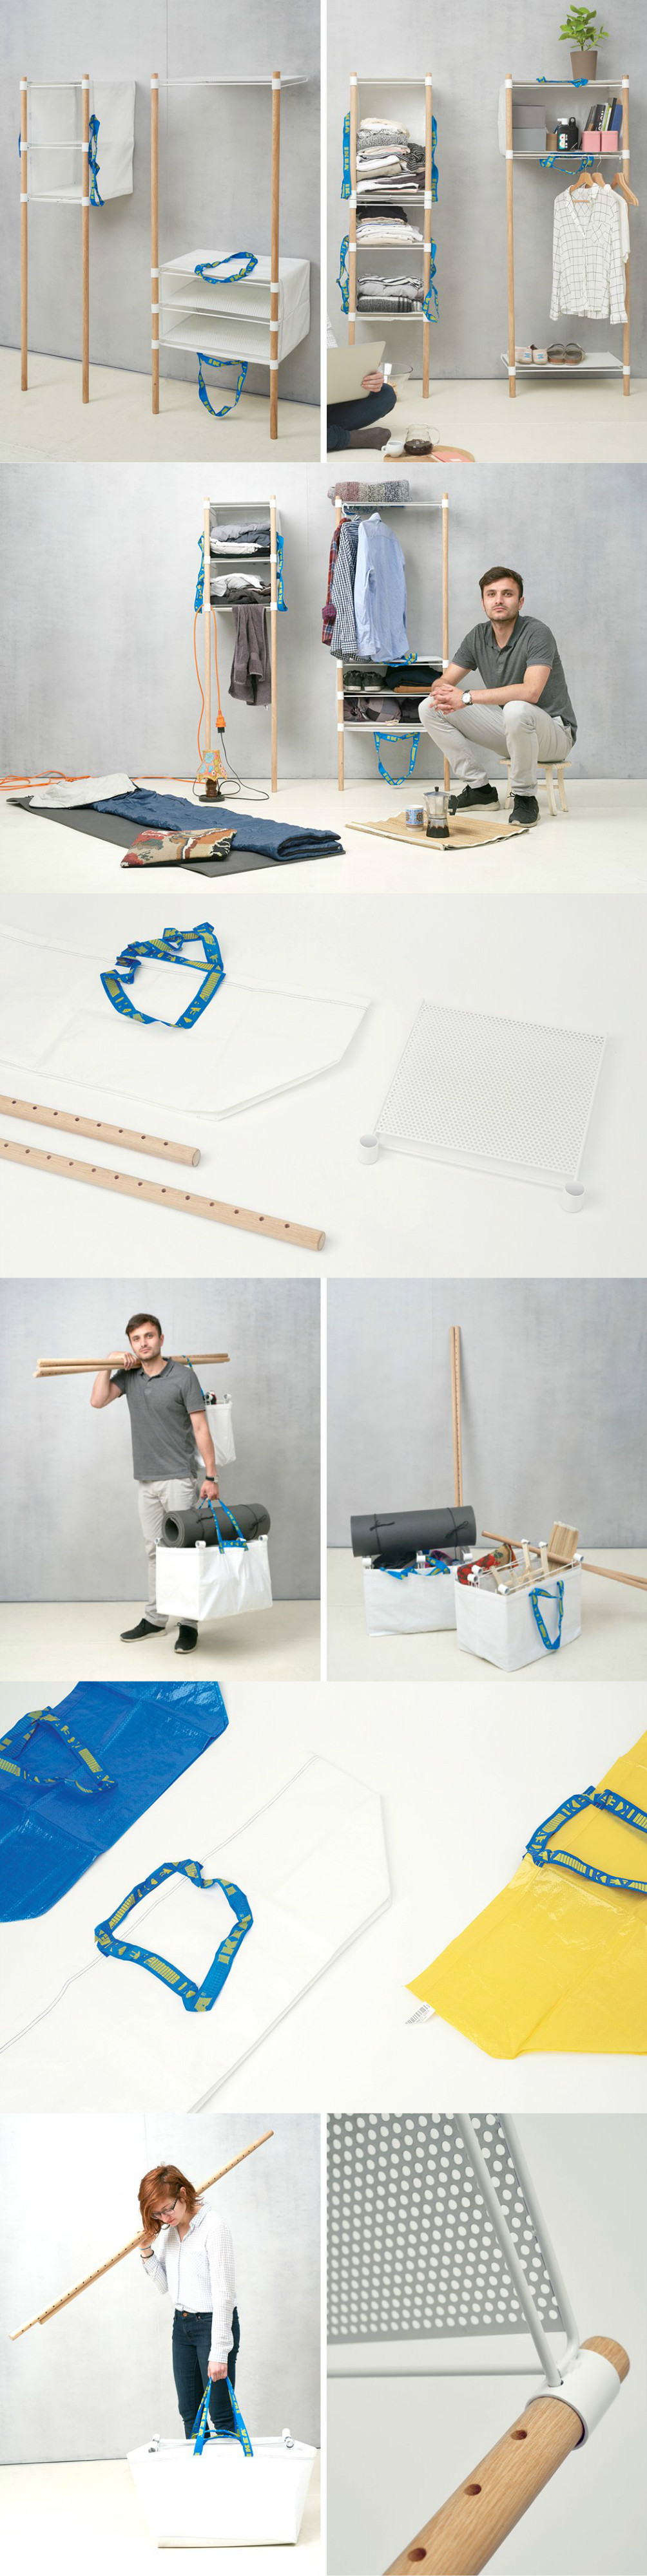 "The ""Out of the Bag"" concept utilizes IKEA's very own Frakta bag to form on-the-go furniture that's easily assembled in seconds. No, seriously… seconds… unlike true IKEA